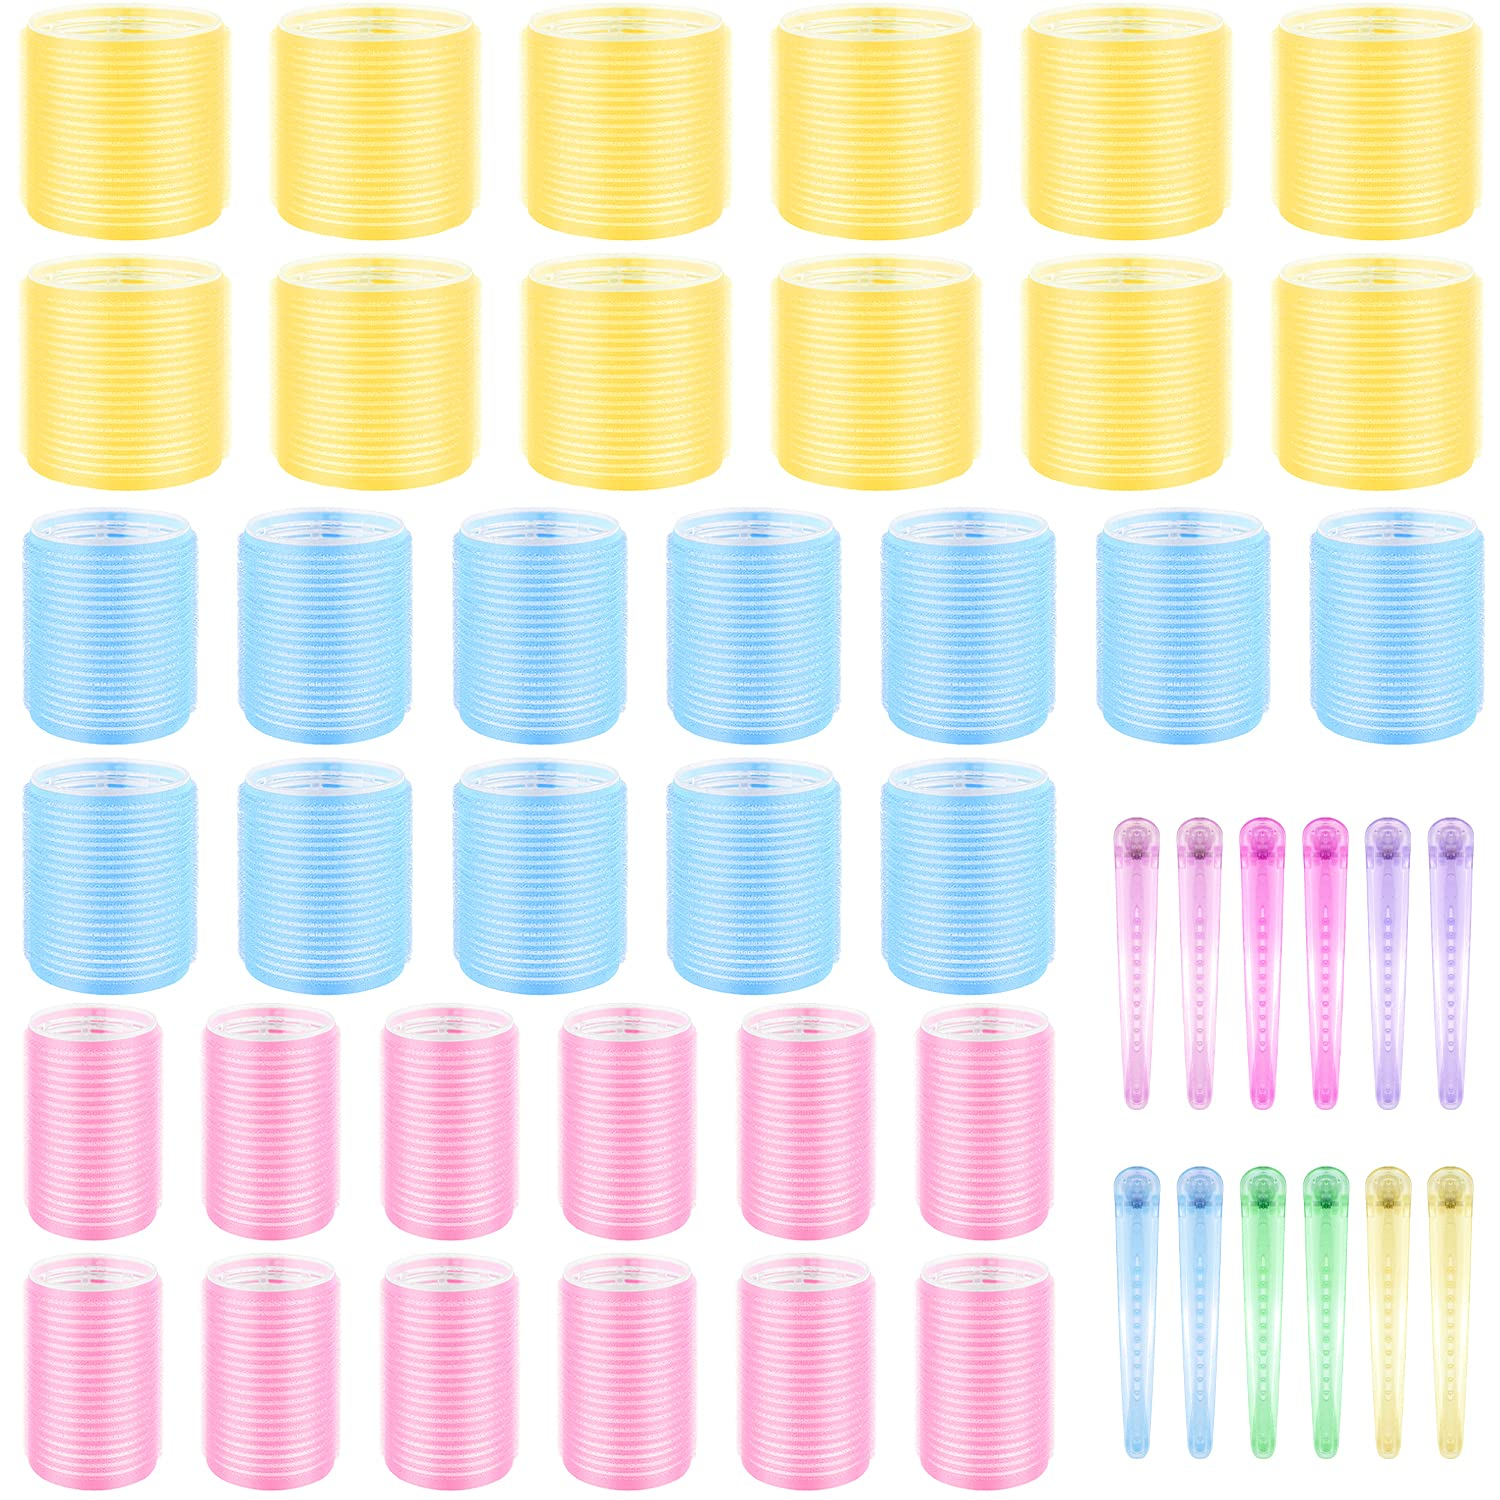 36 Pcs Jumbo Size Max 87% OFF Albuquerque Mall Hair Roller Set Self sets Grip Rollers